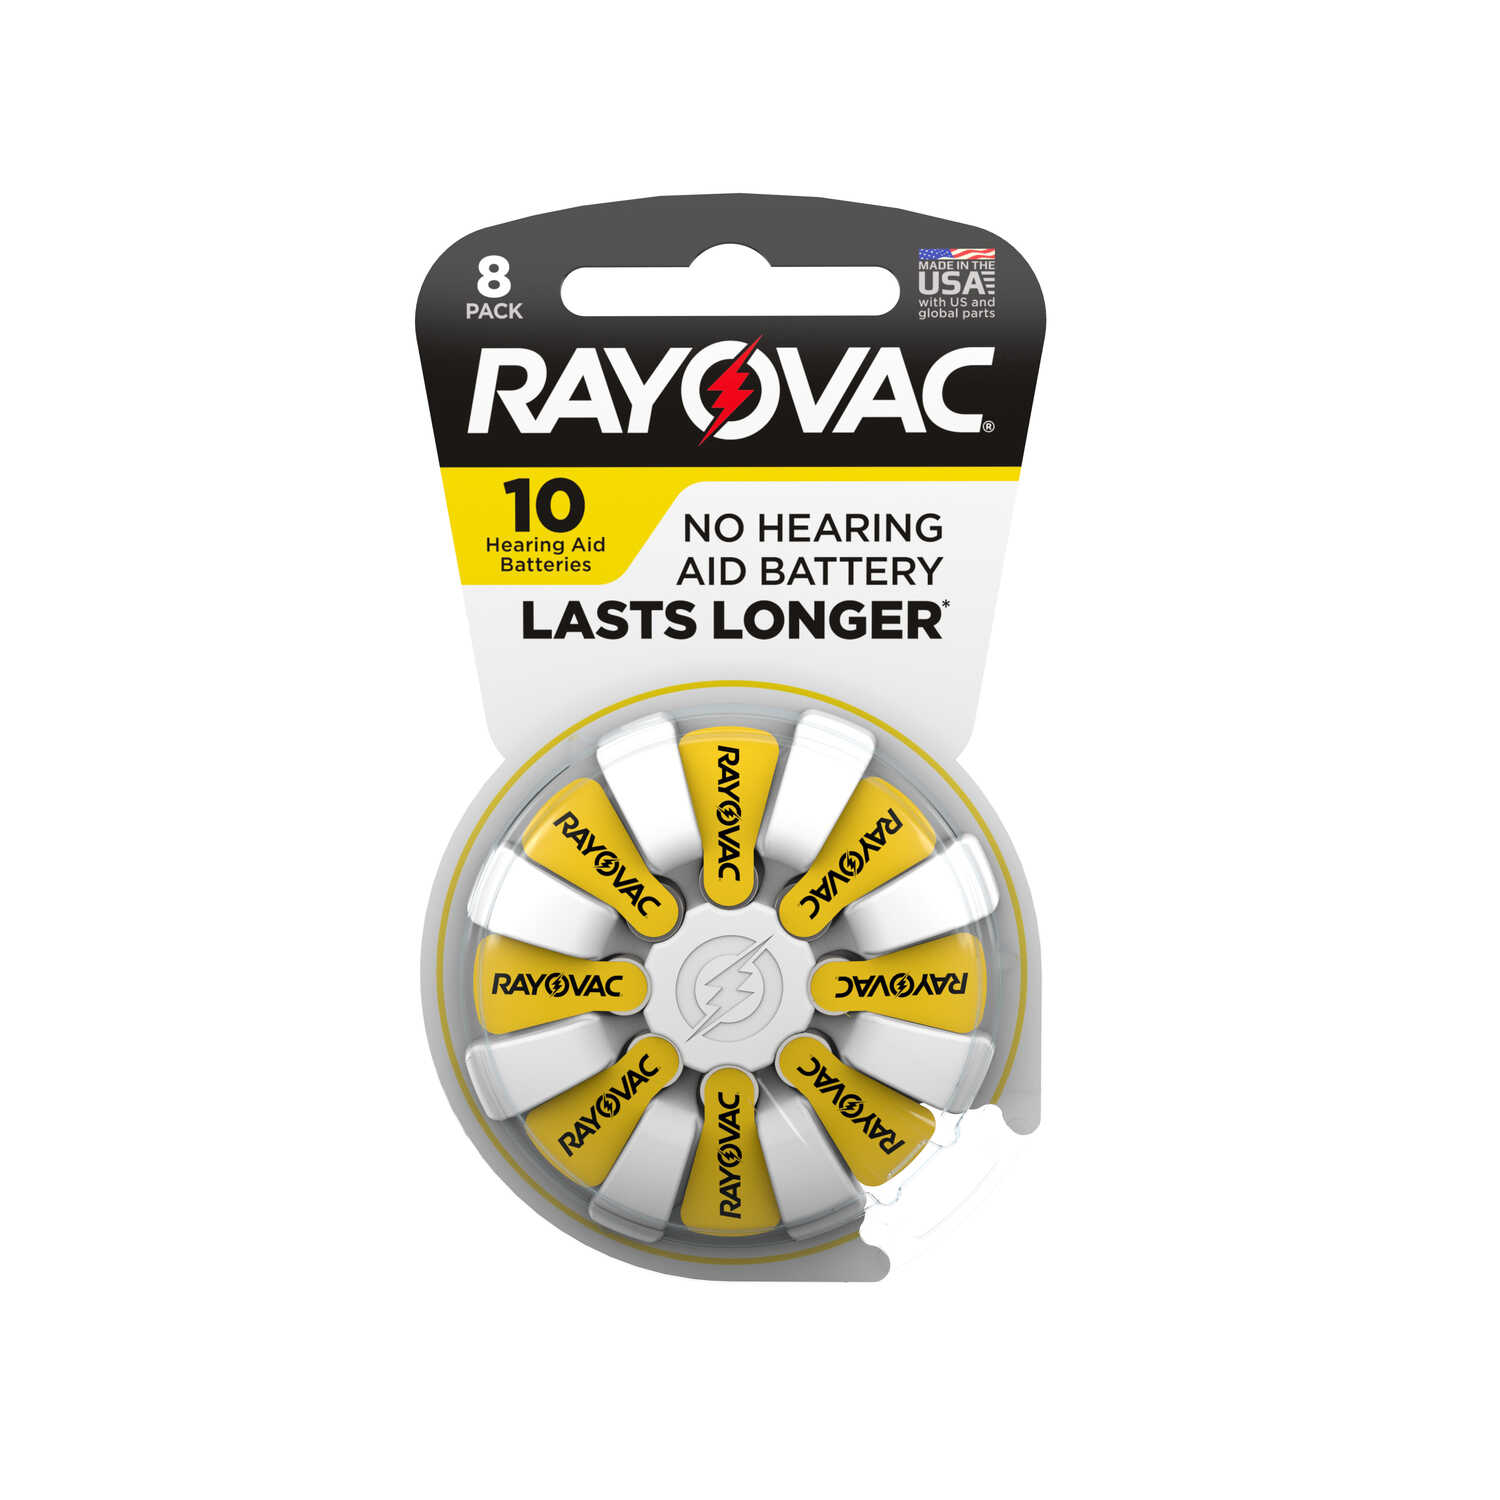 Rayovac  Zinc-Air  10  1.45 volt Hearing Aid Battery  8 pk